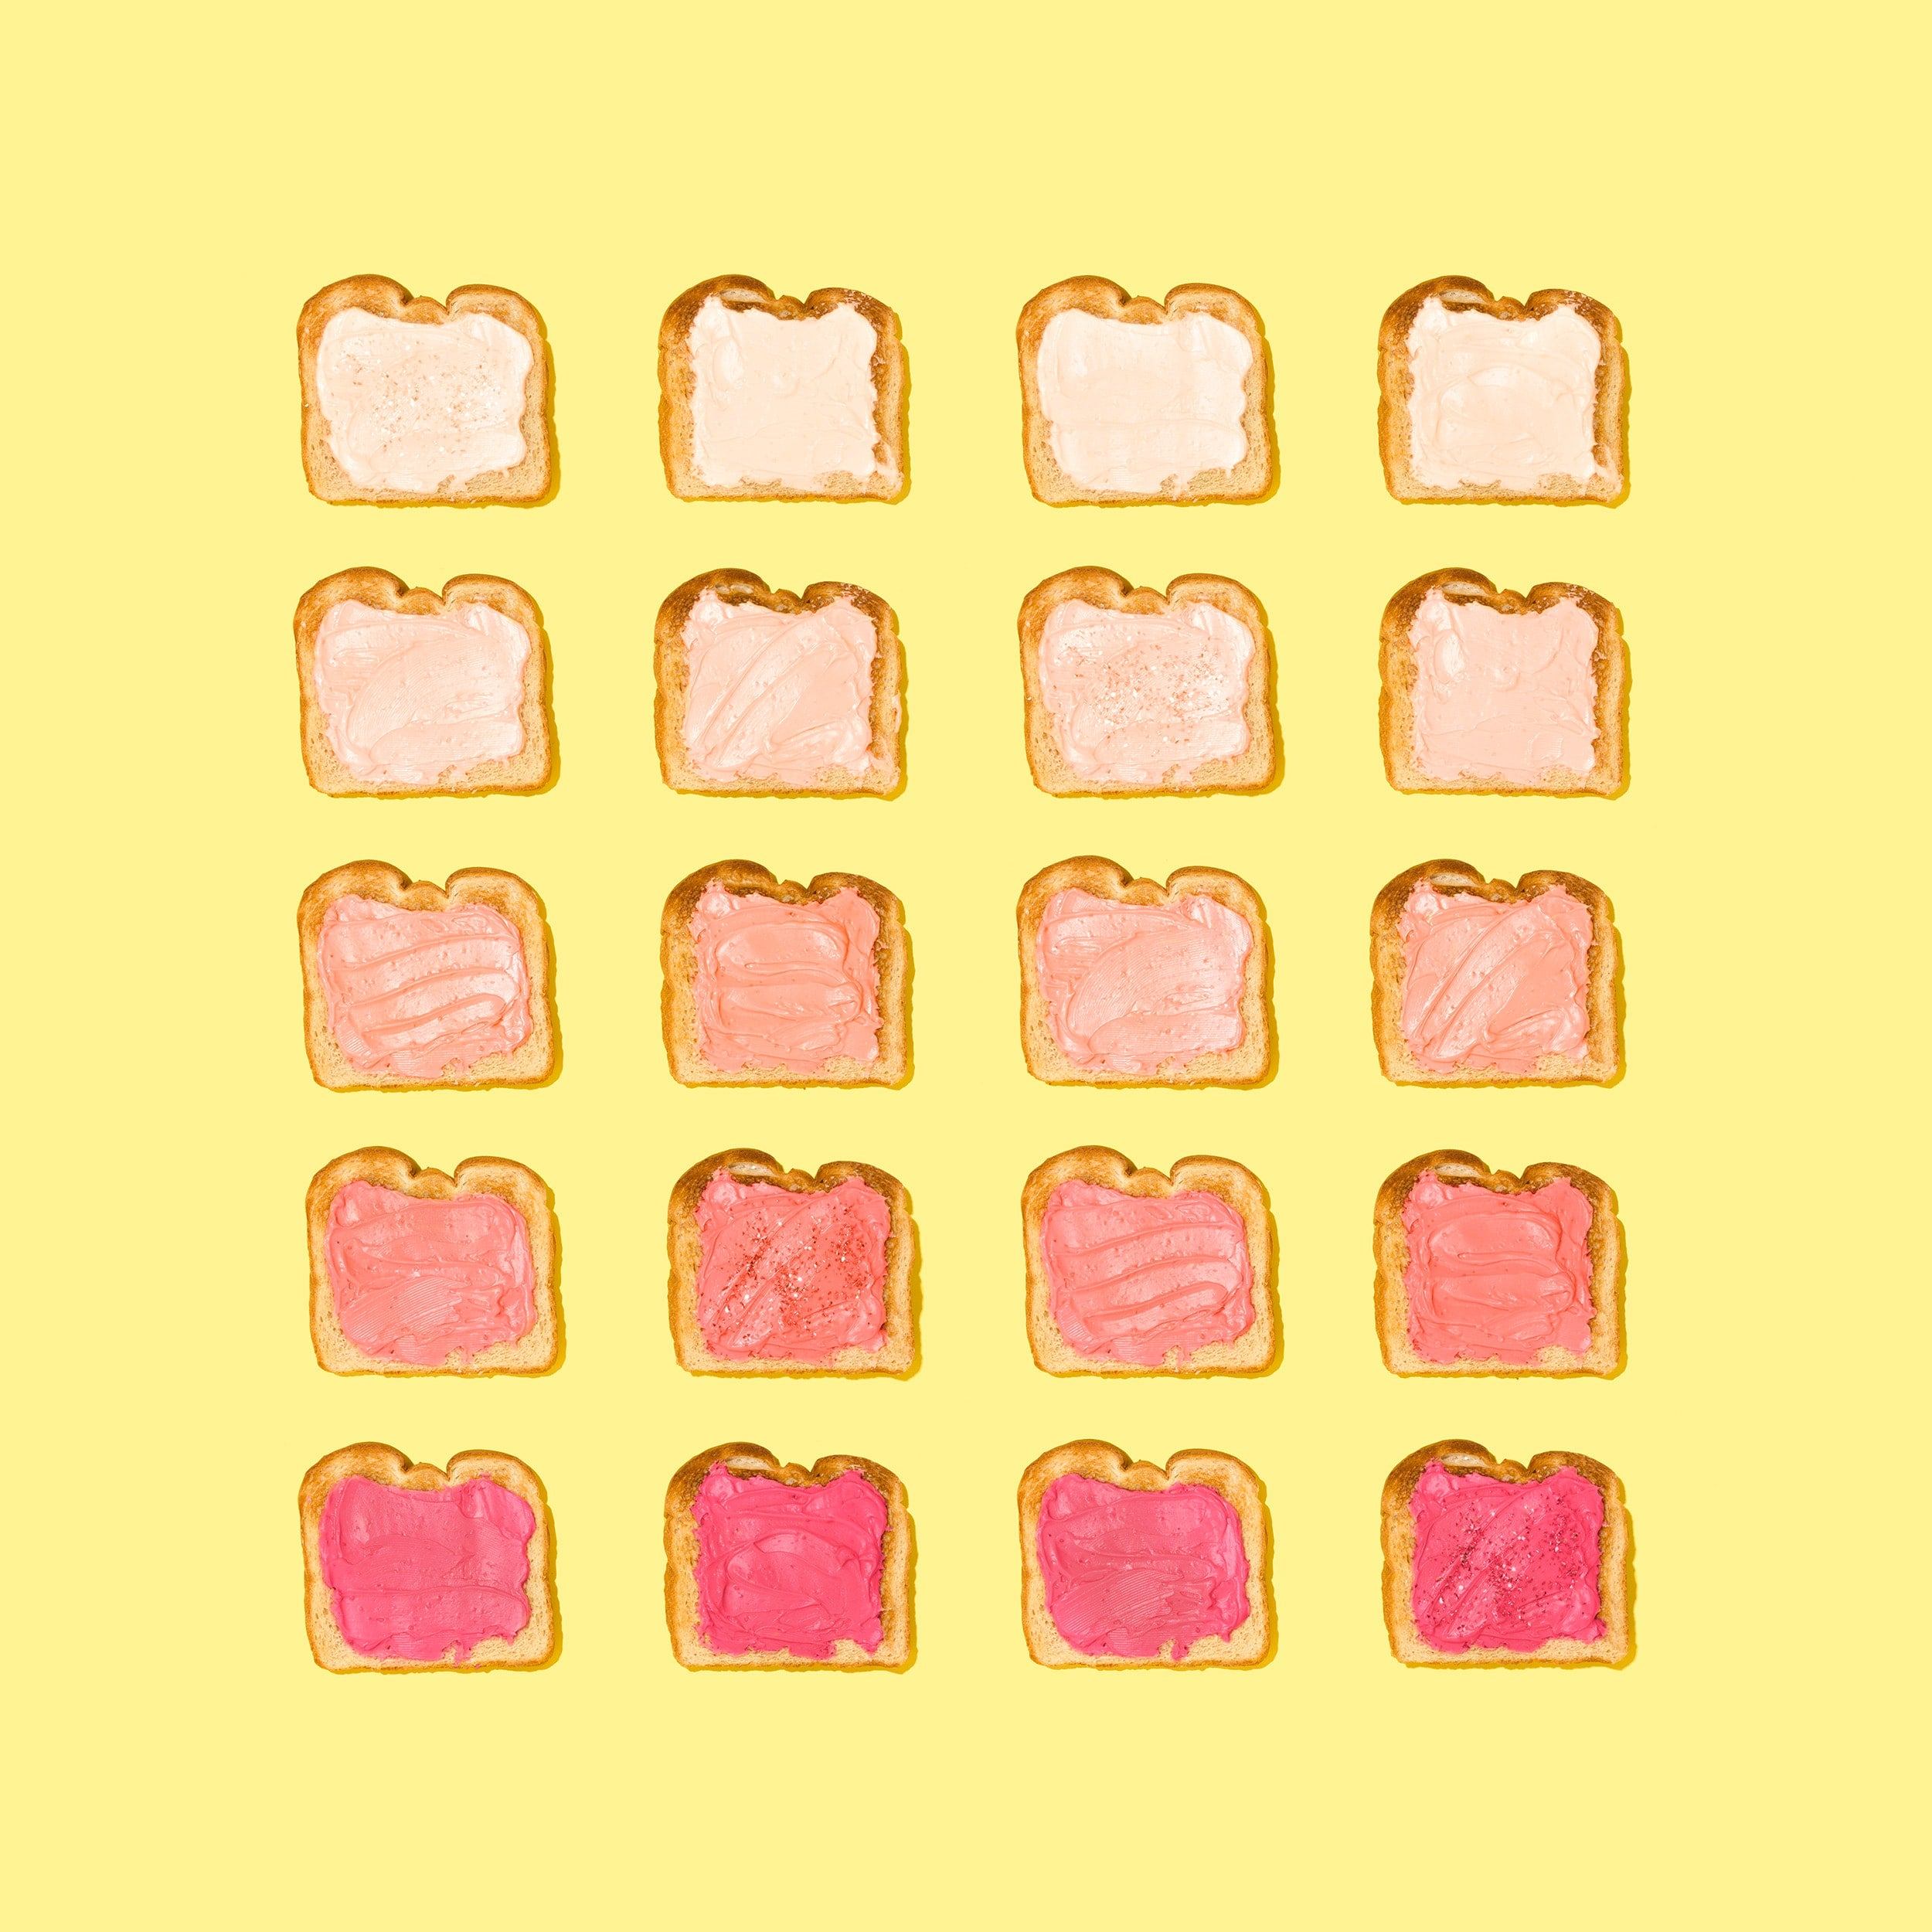 yellow background with rows of toast all with varying shades of pink spread